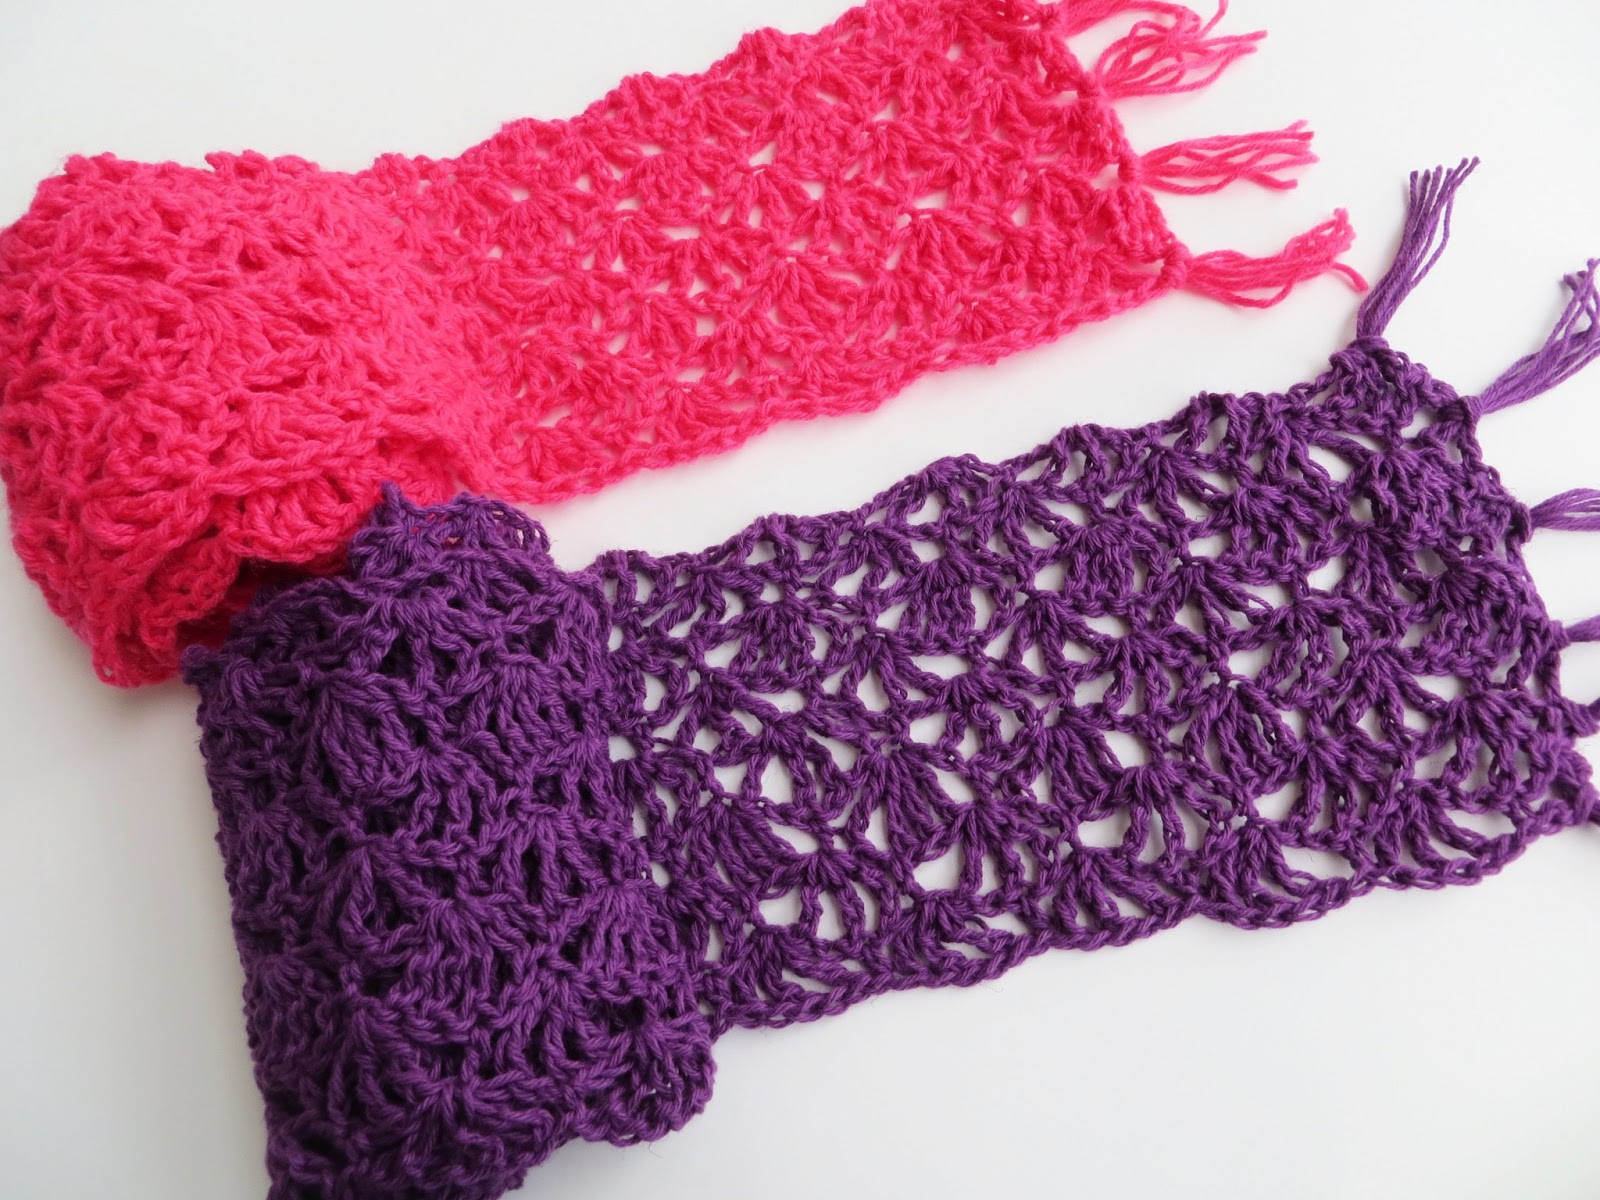 Free Crochet Patterns : Crochet Dreamz: Alana Lacy Scarf, Free Crochet Pattern